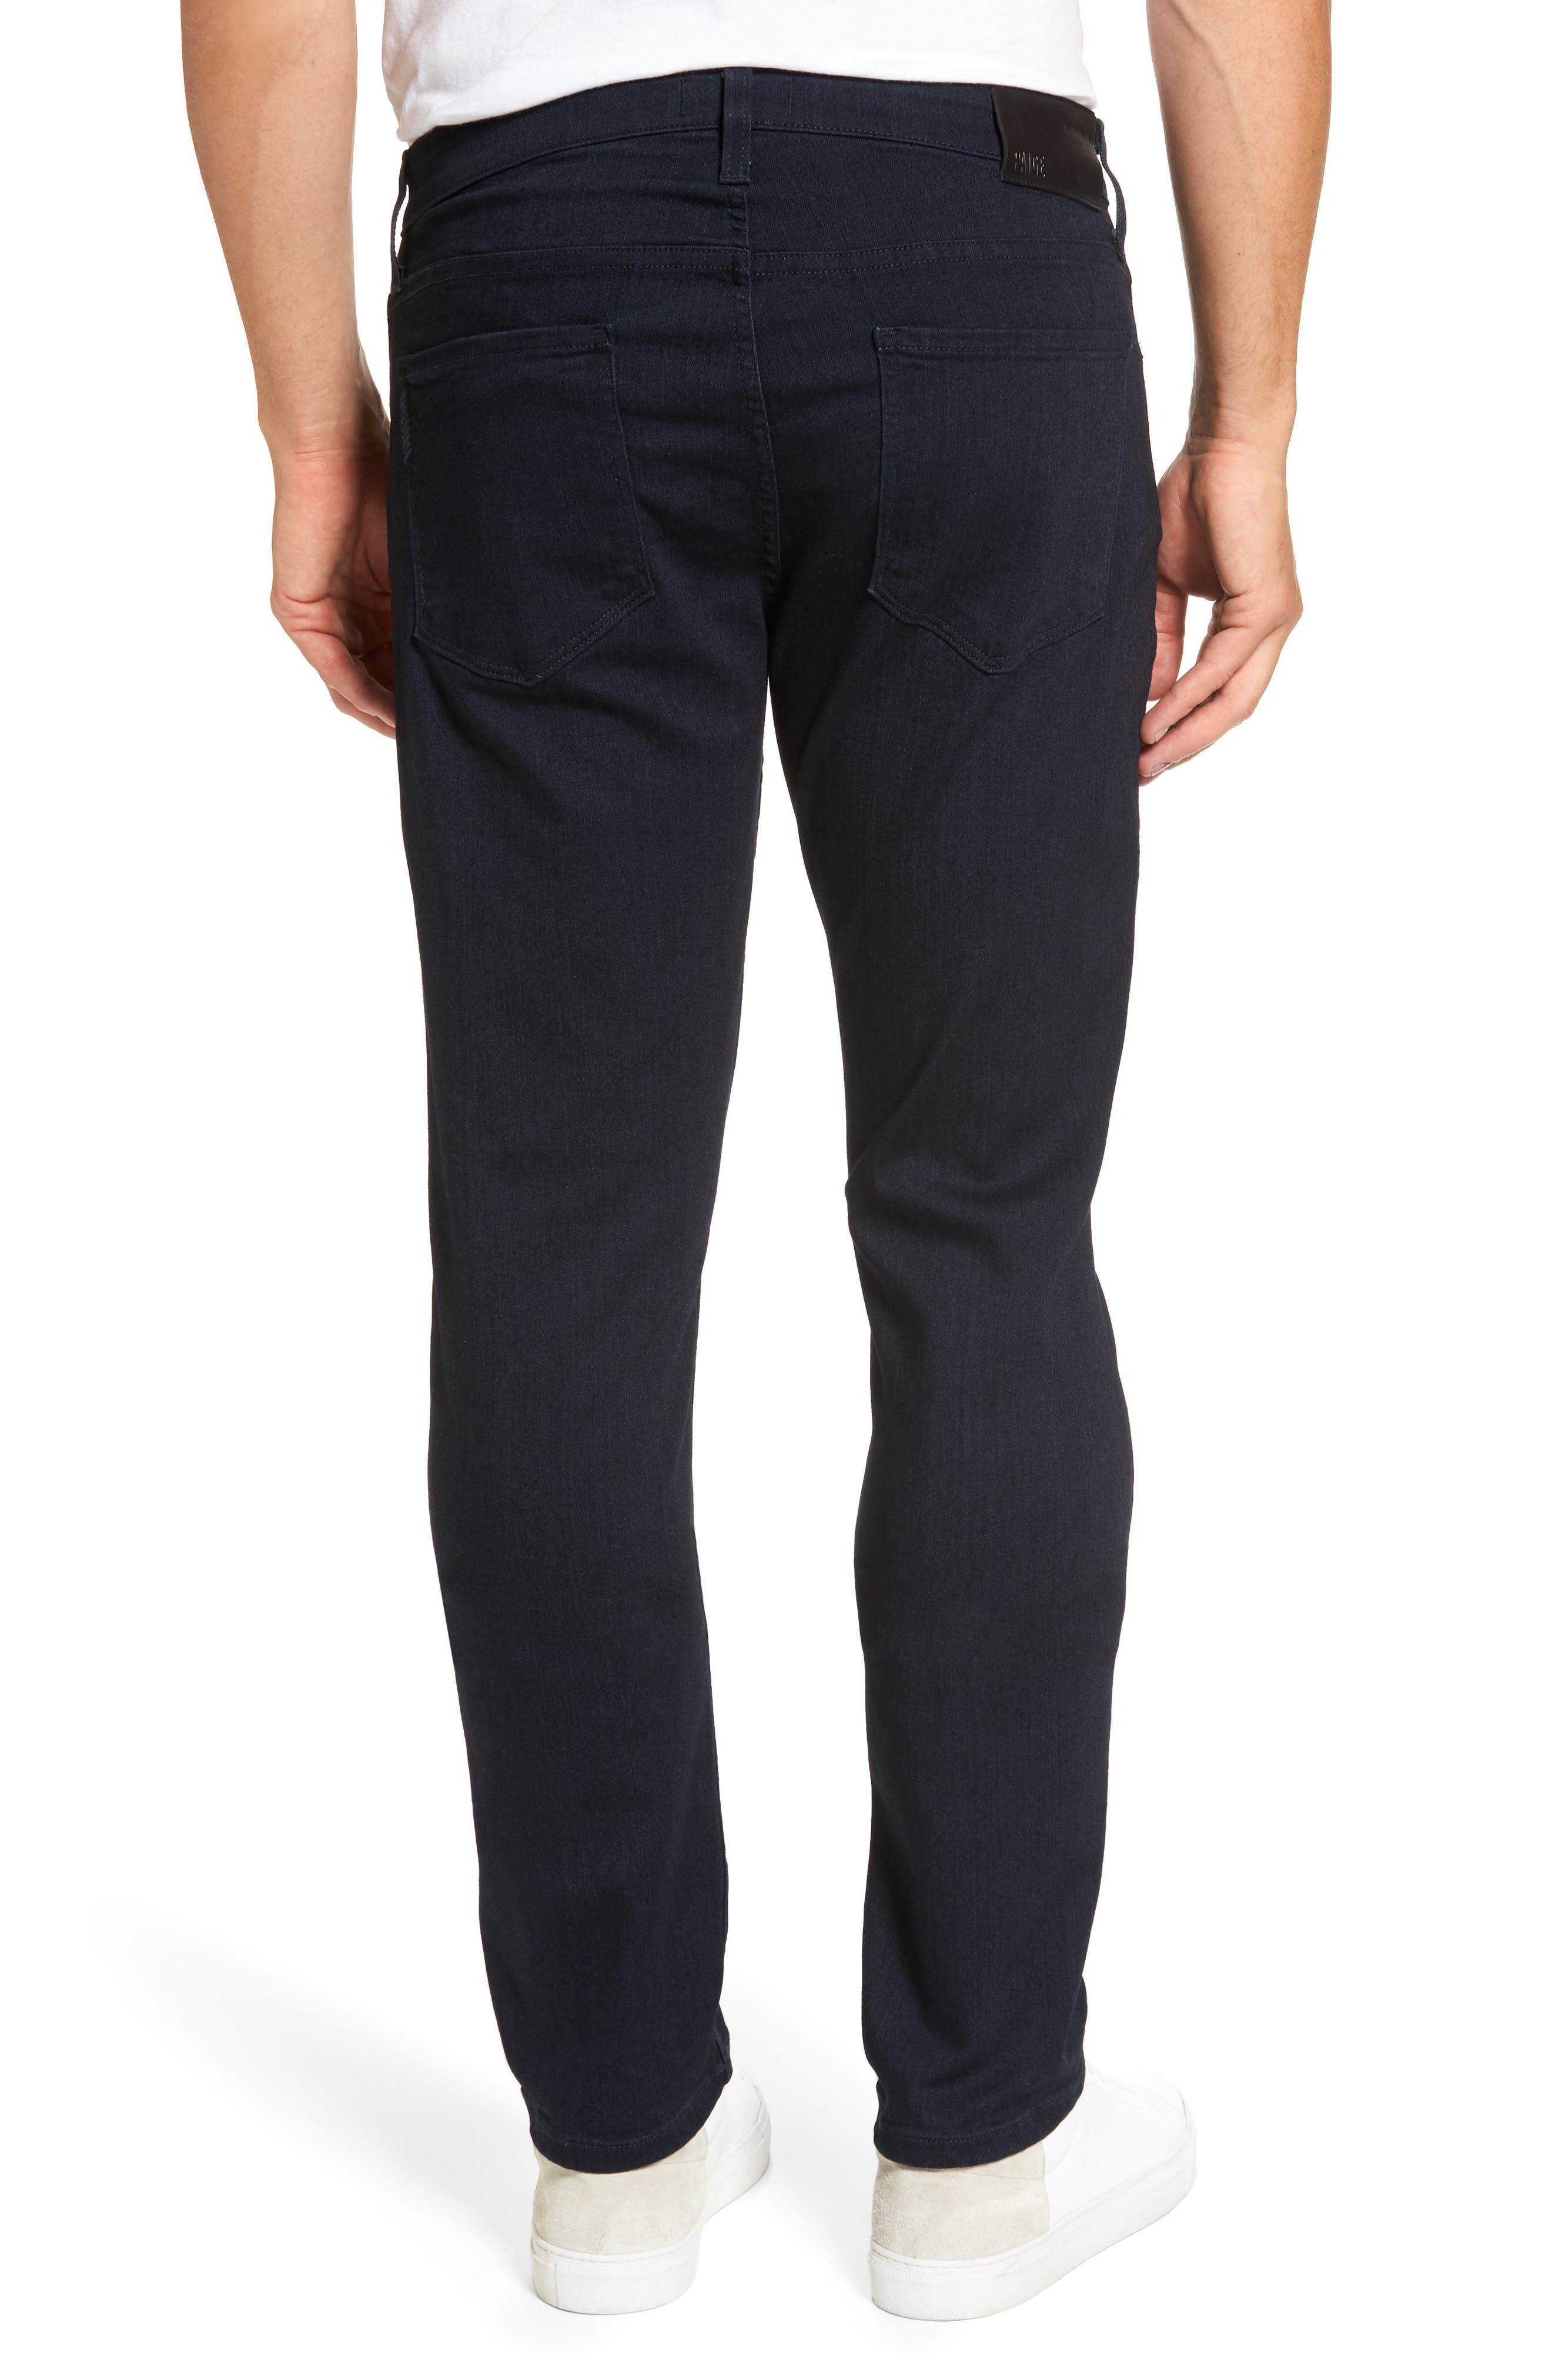 PAIGE, Transcend - Federal Slim Straight Leg Jeans, Alternate thumbnail 2, color, INKWELL